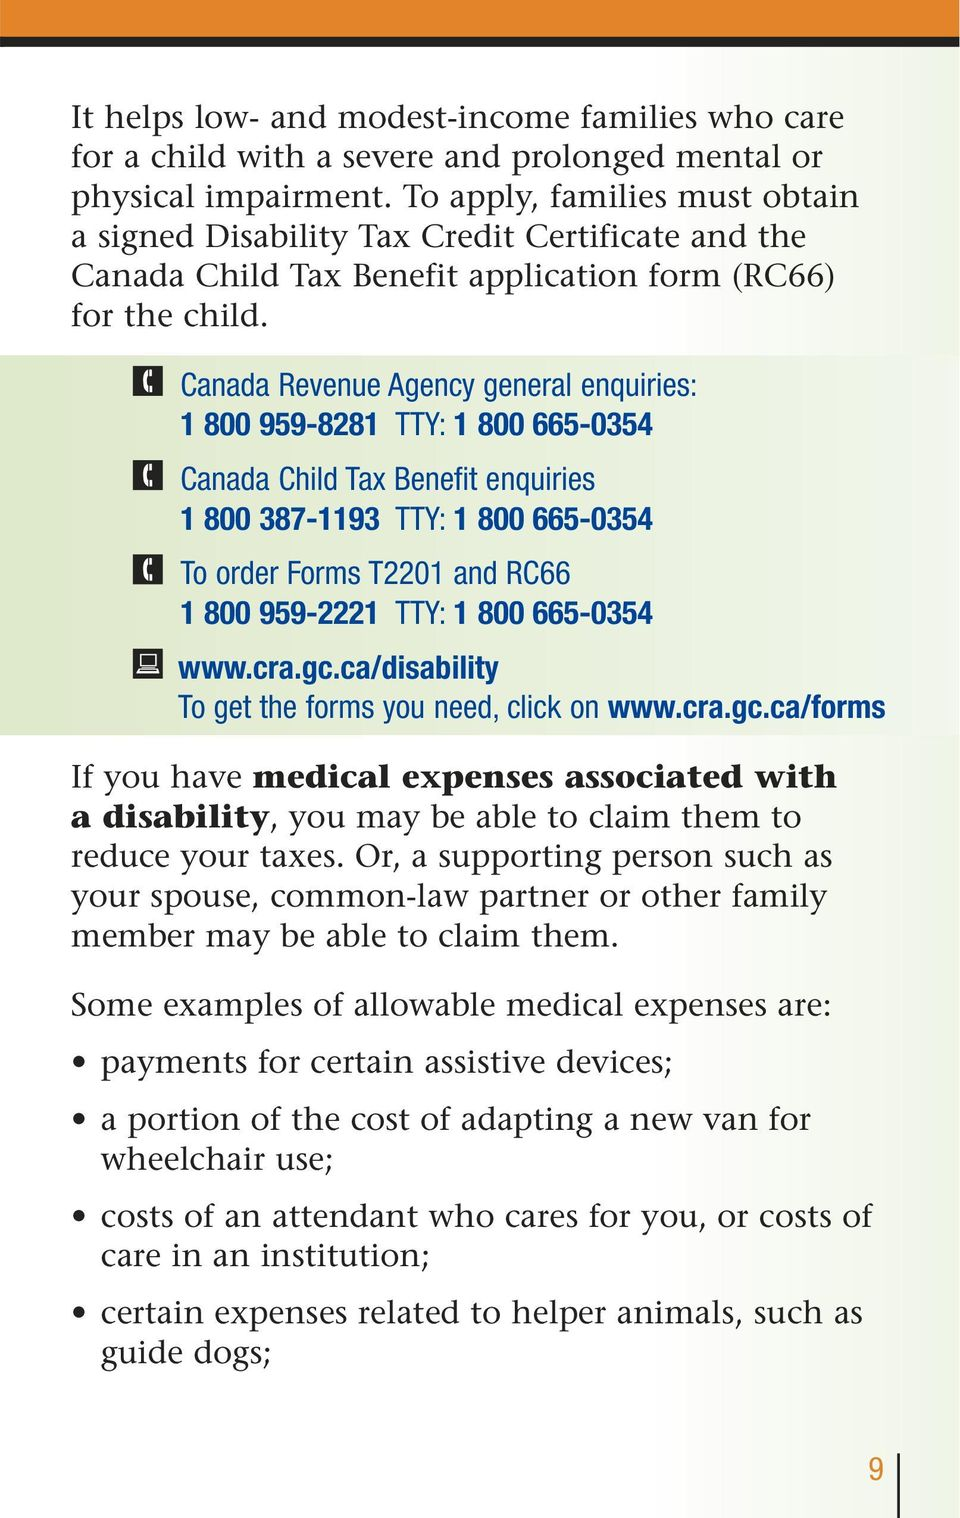 Canada Revenue Agency general enquiries: 1 800 959-8281 TTY: 1 800 665-0354 Canada Child Tax Benefit enquiries 1 800 387-1193 TTY: 1 800 665-0354 To order Forms T2201 and RC66 1 800 959-2221 TTY: 1